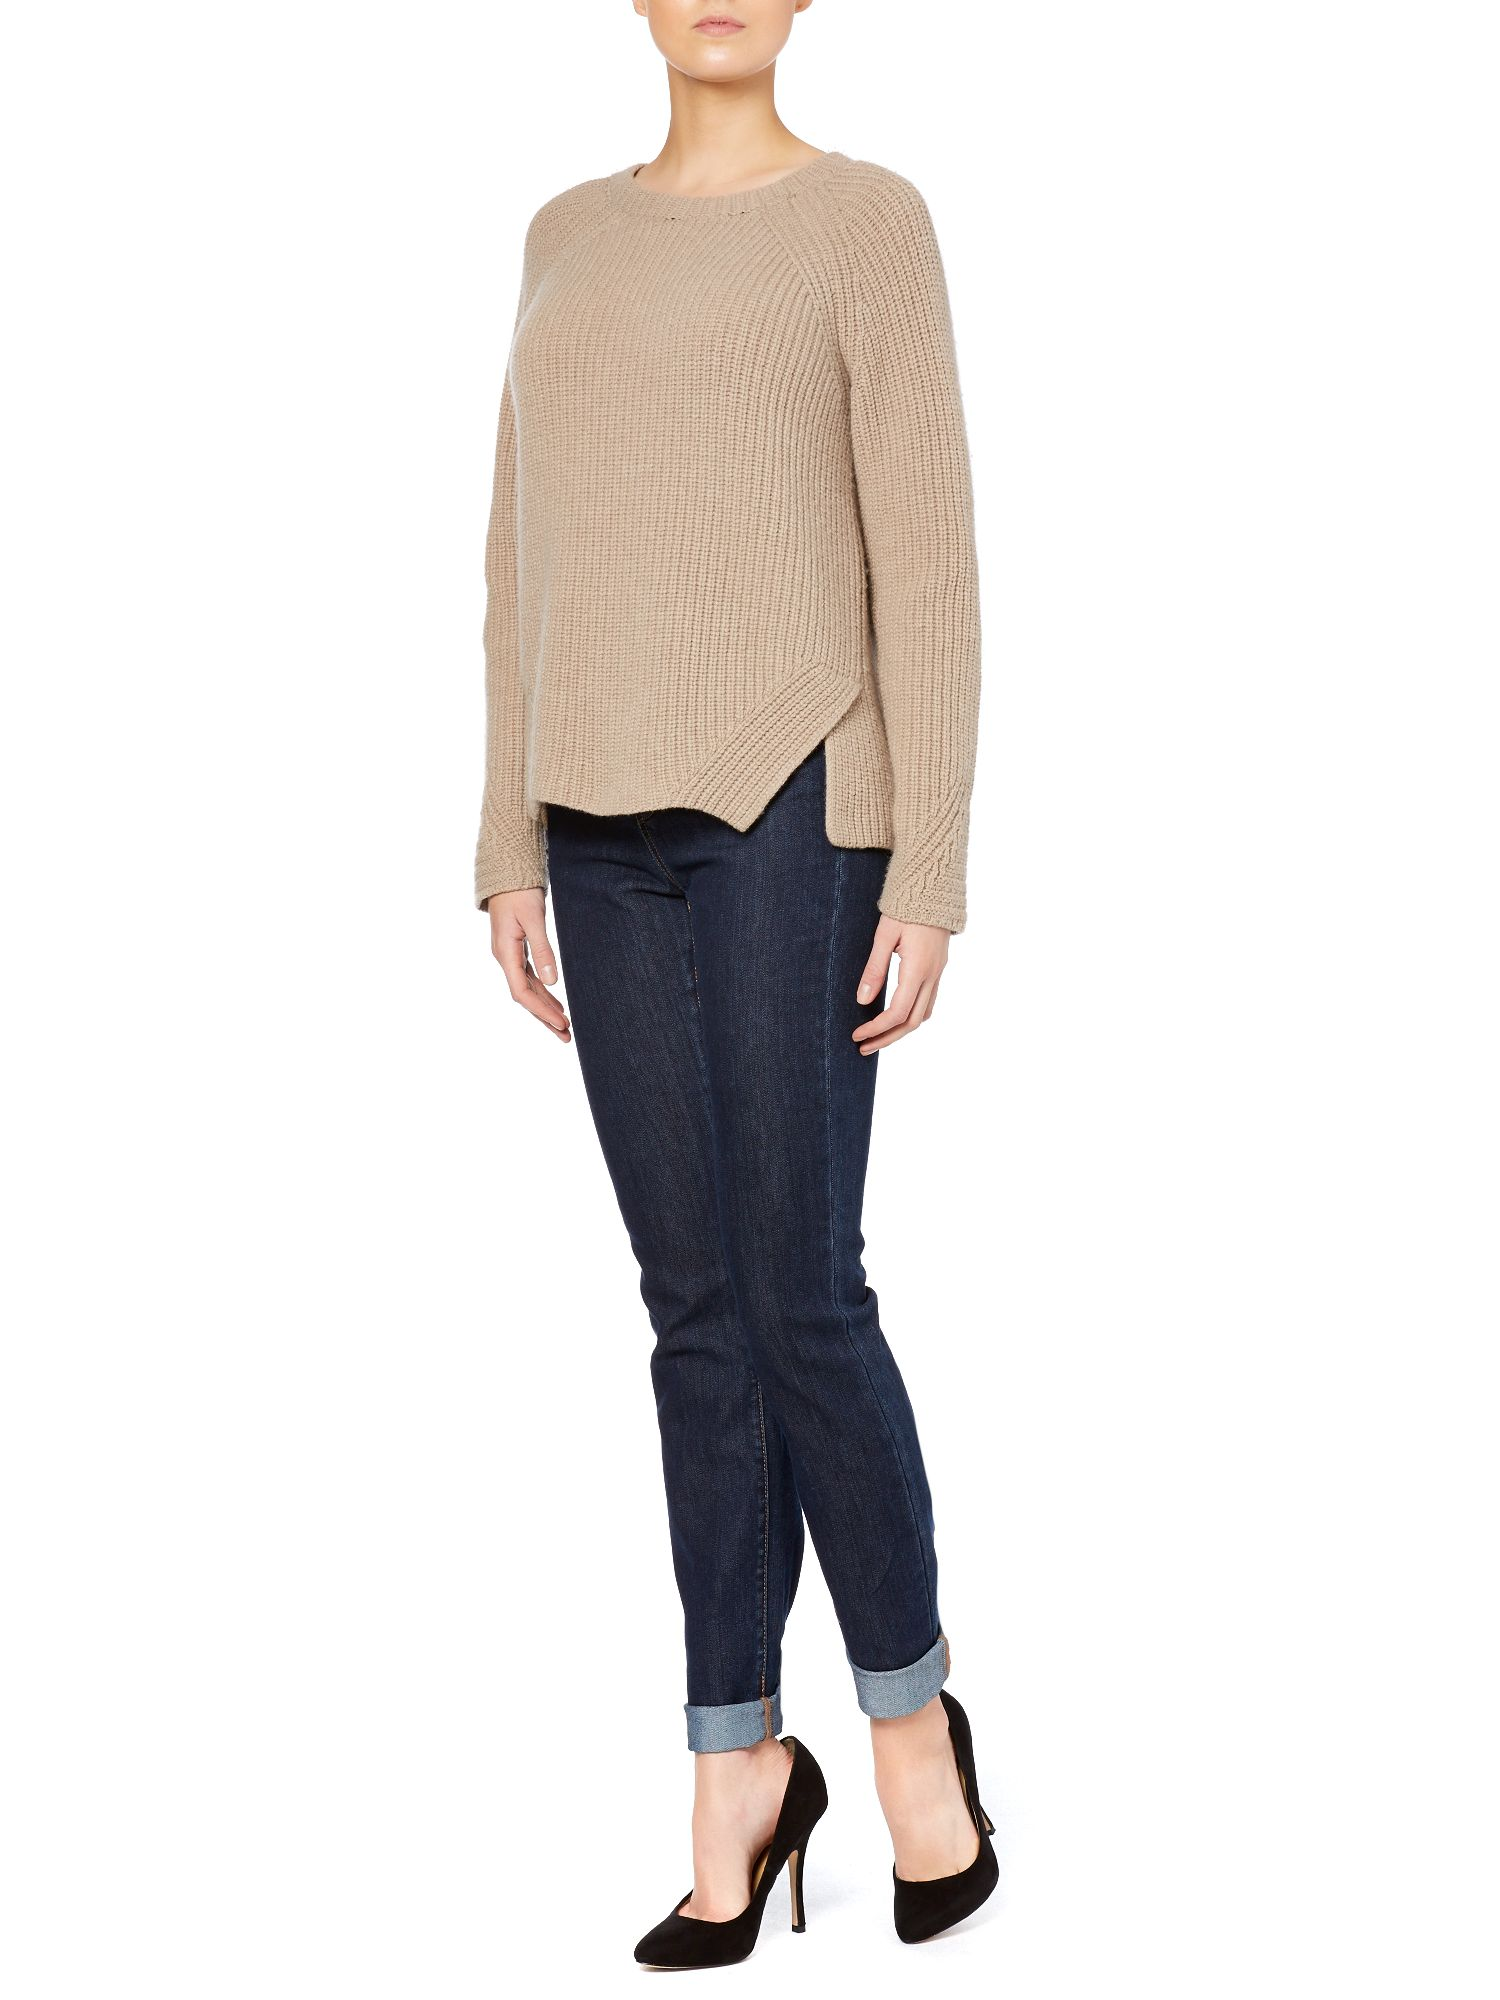 Sonale wool ribbed sweater